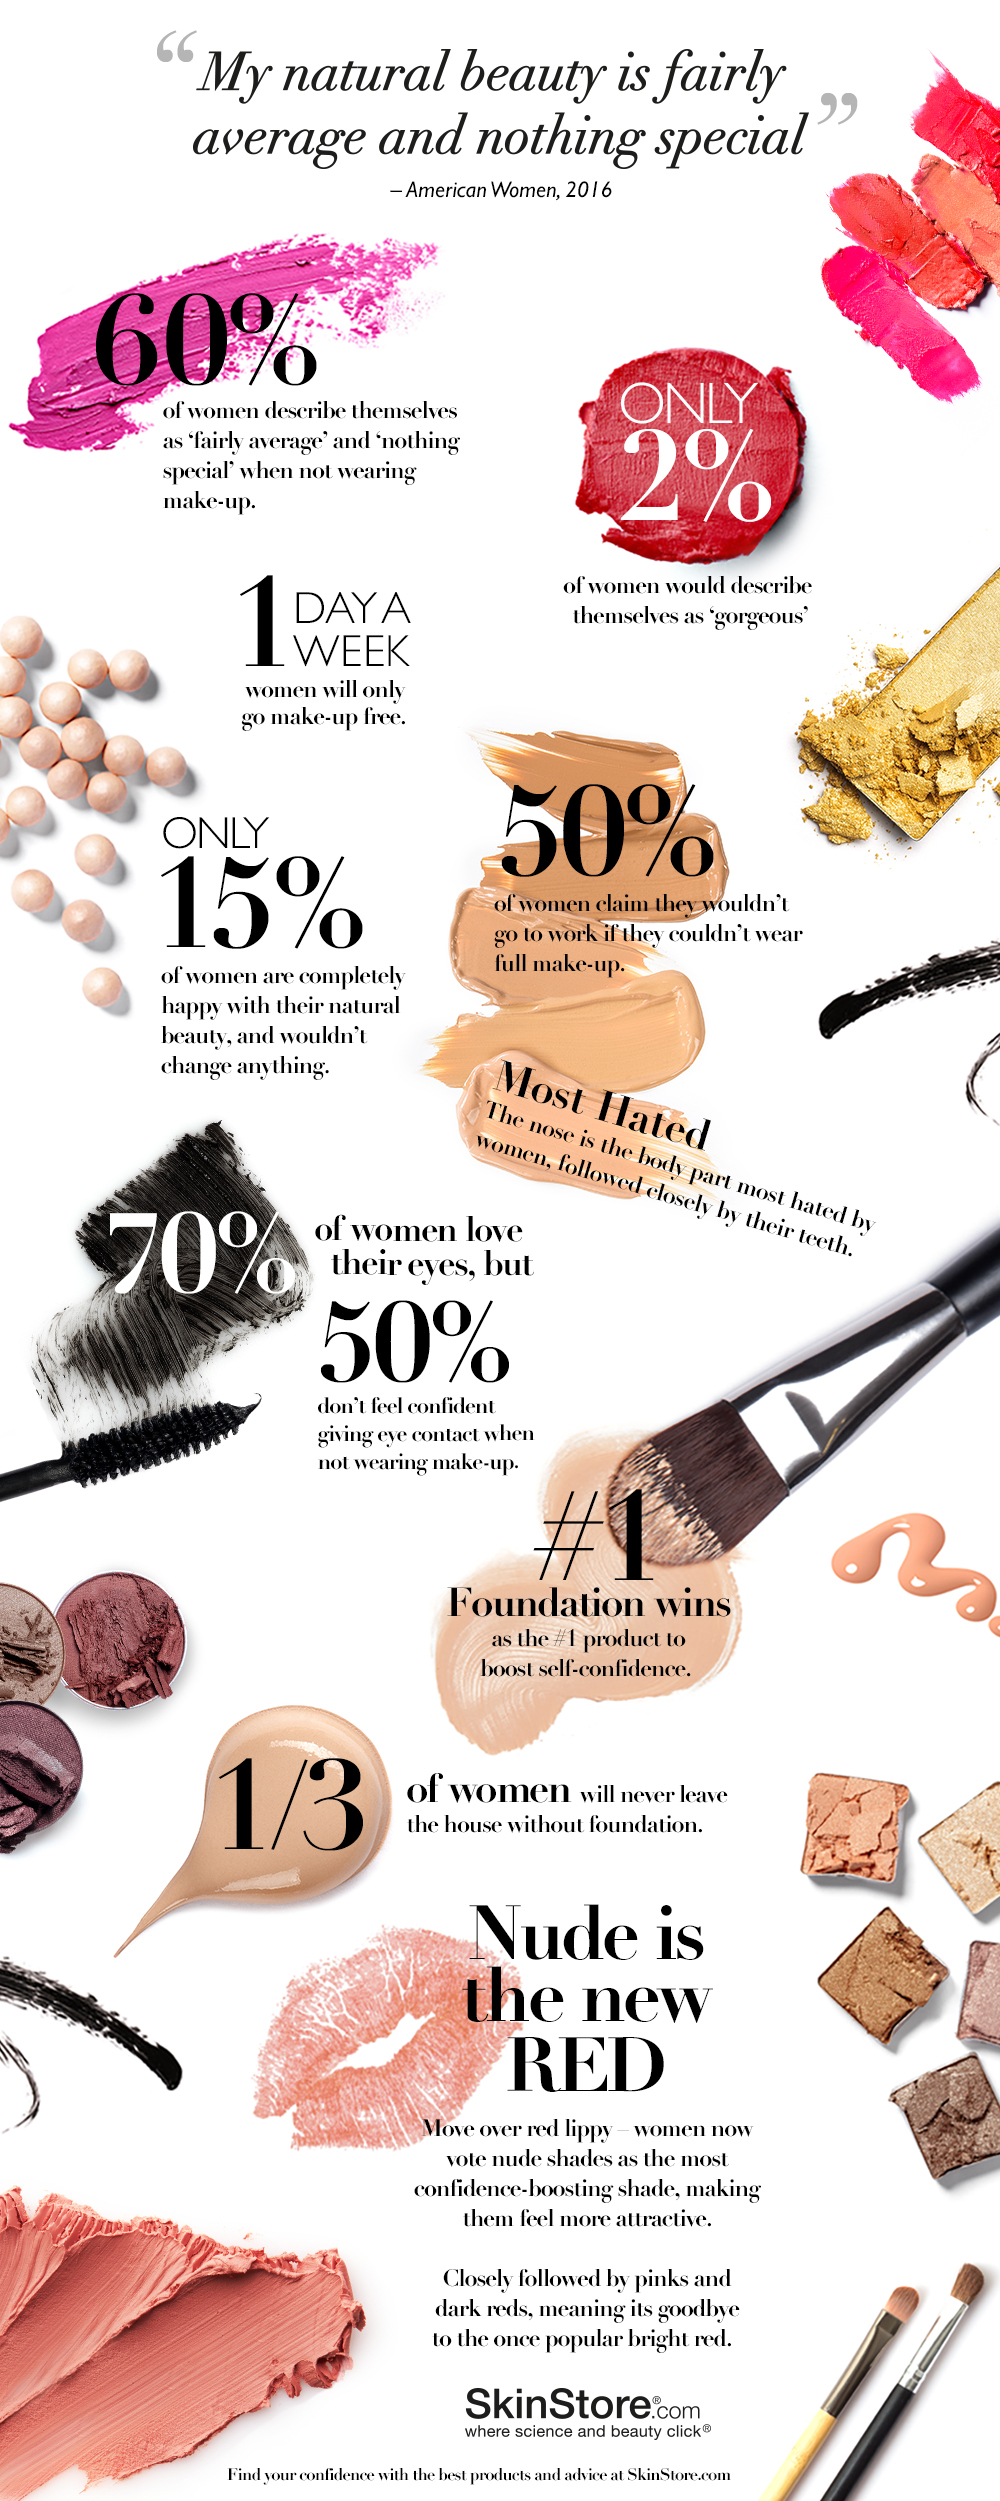 SkinStore Makeup and Self Confidence Infographic